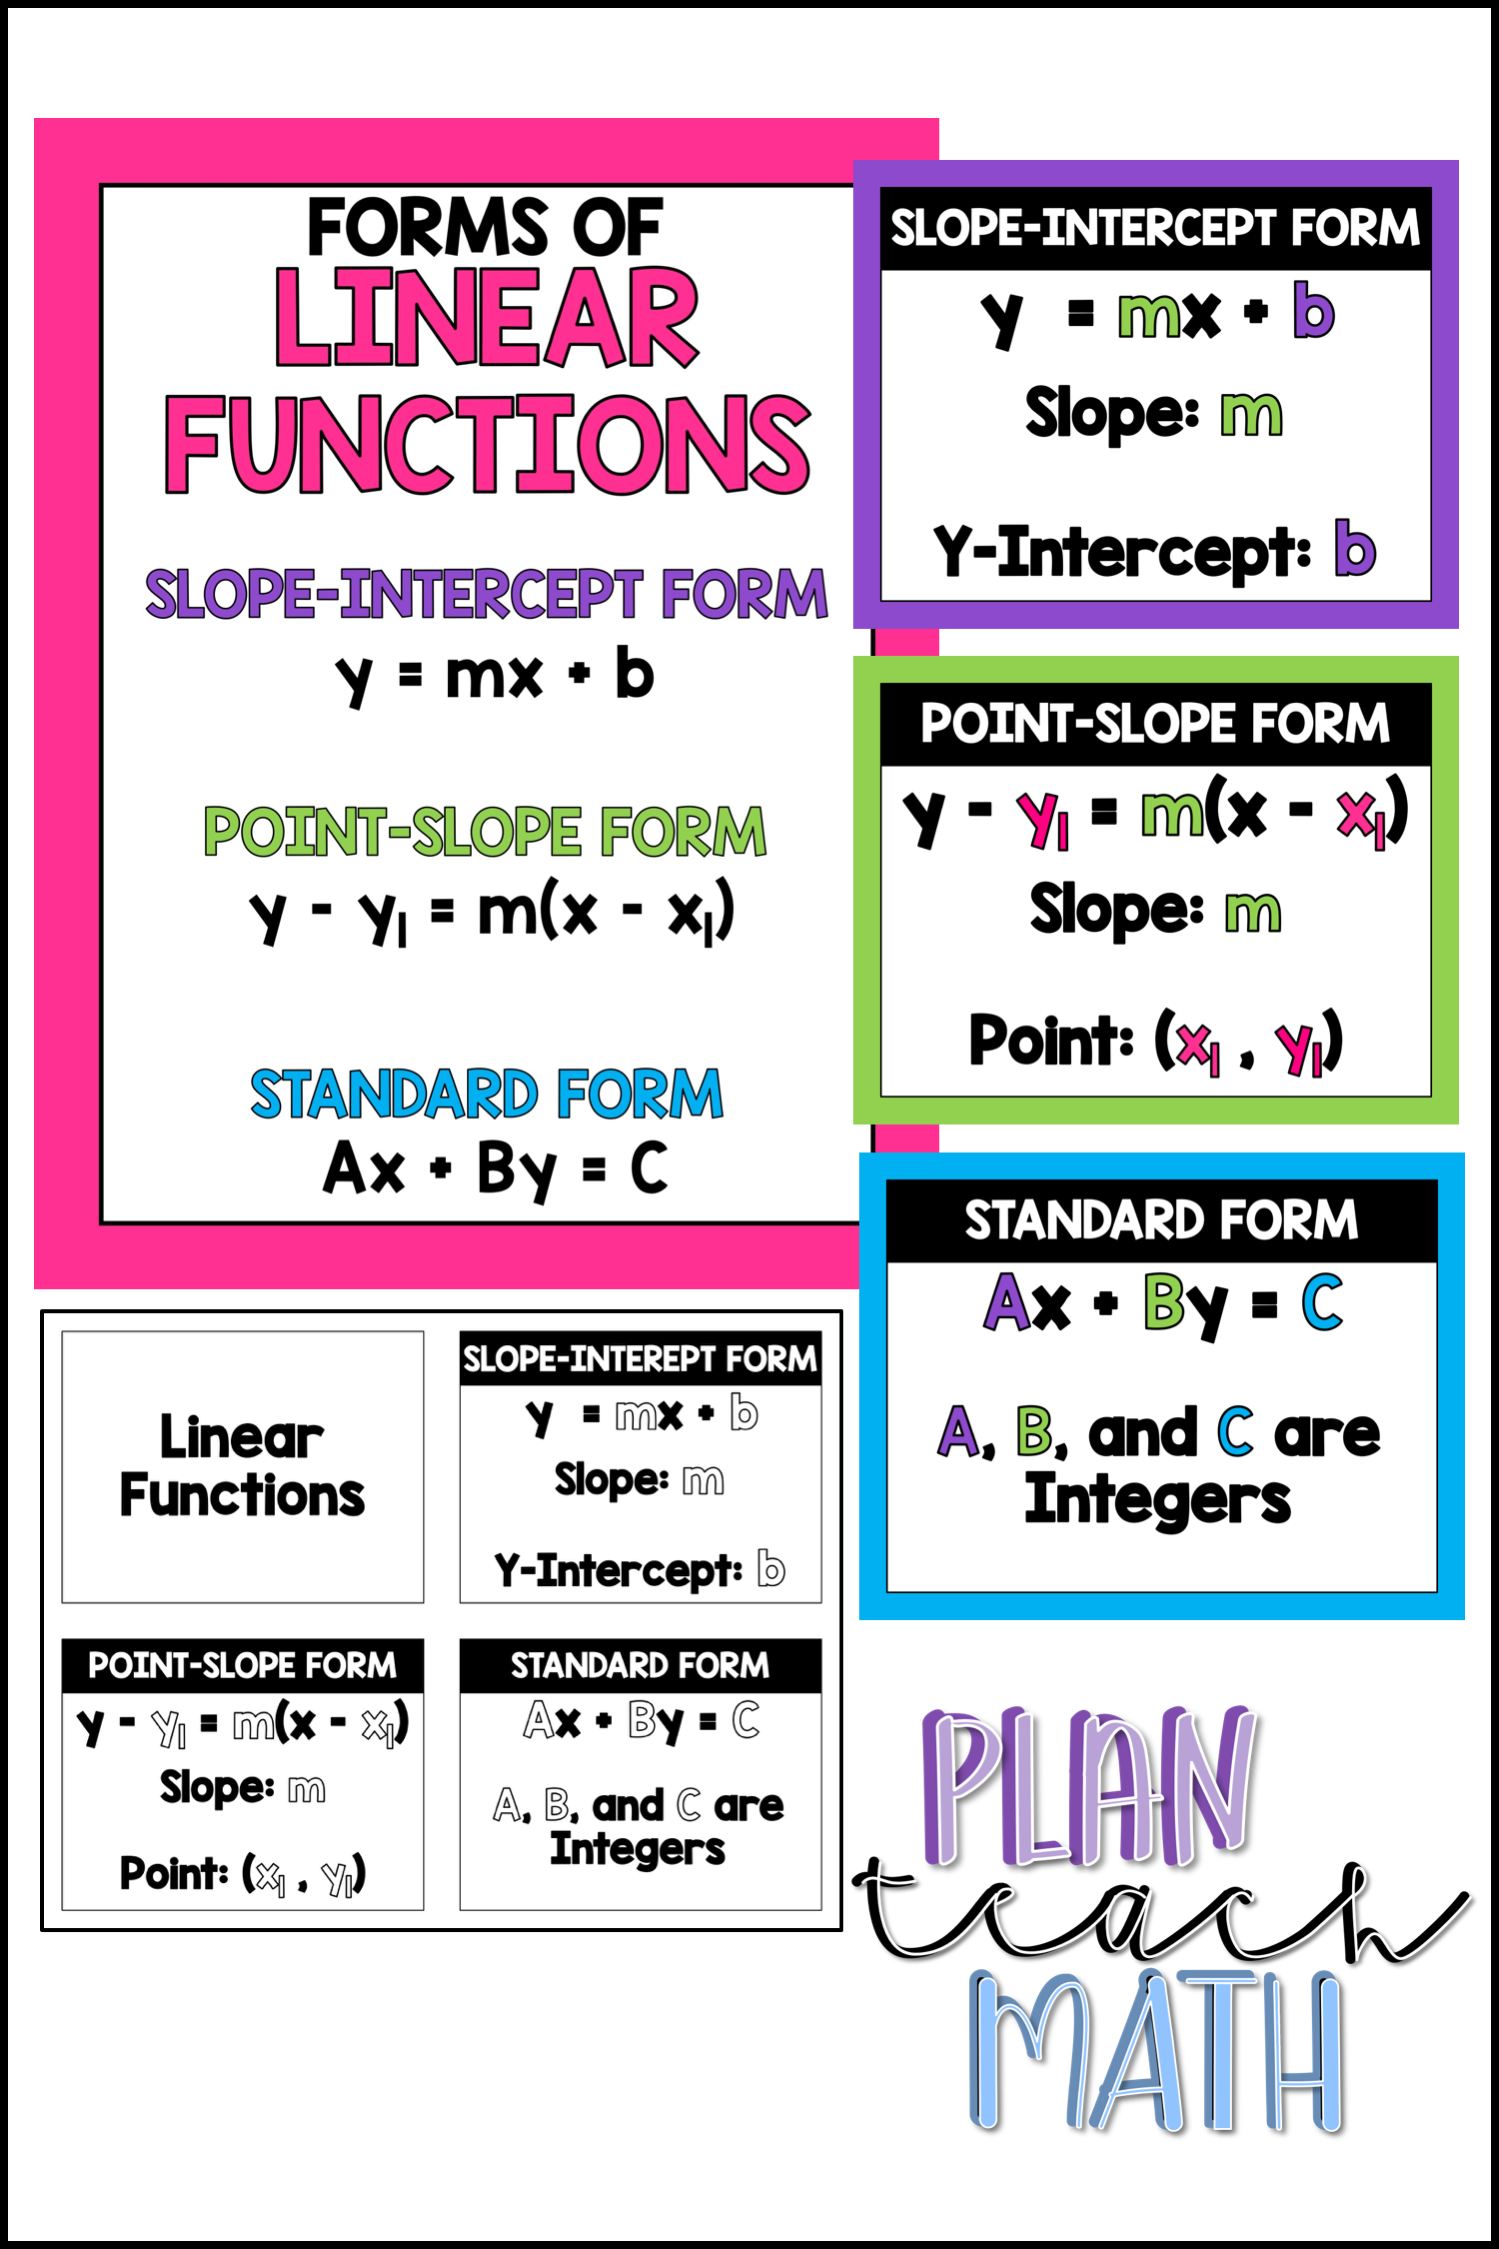 point slope form poster  Linear Functions: Posters and Reference Sheet | Linear ...